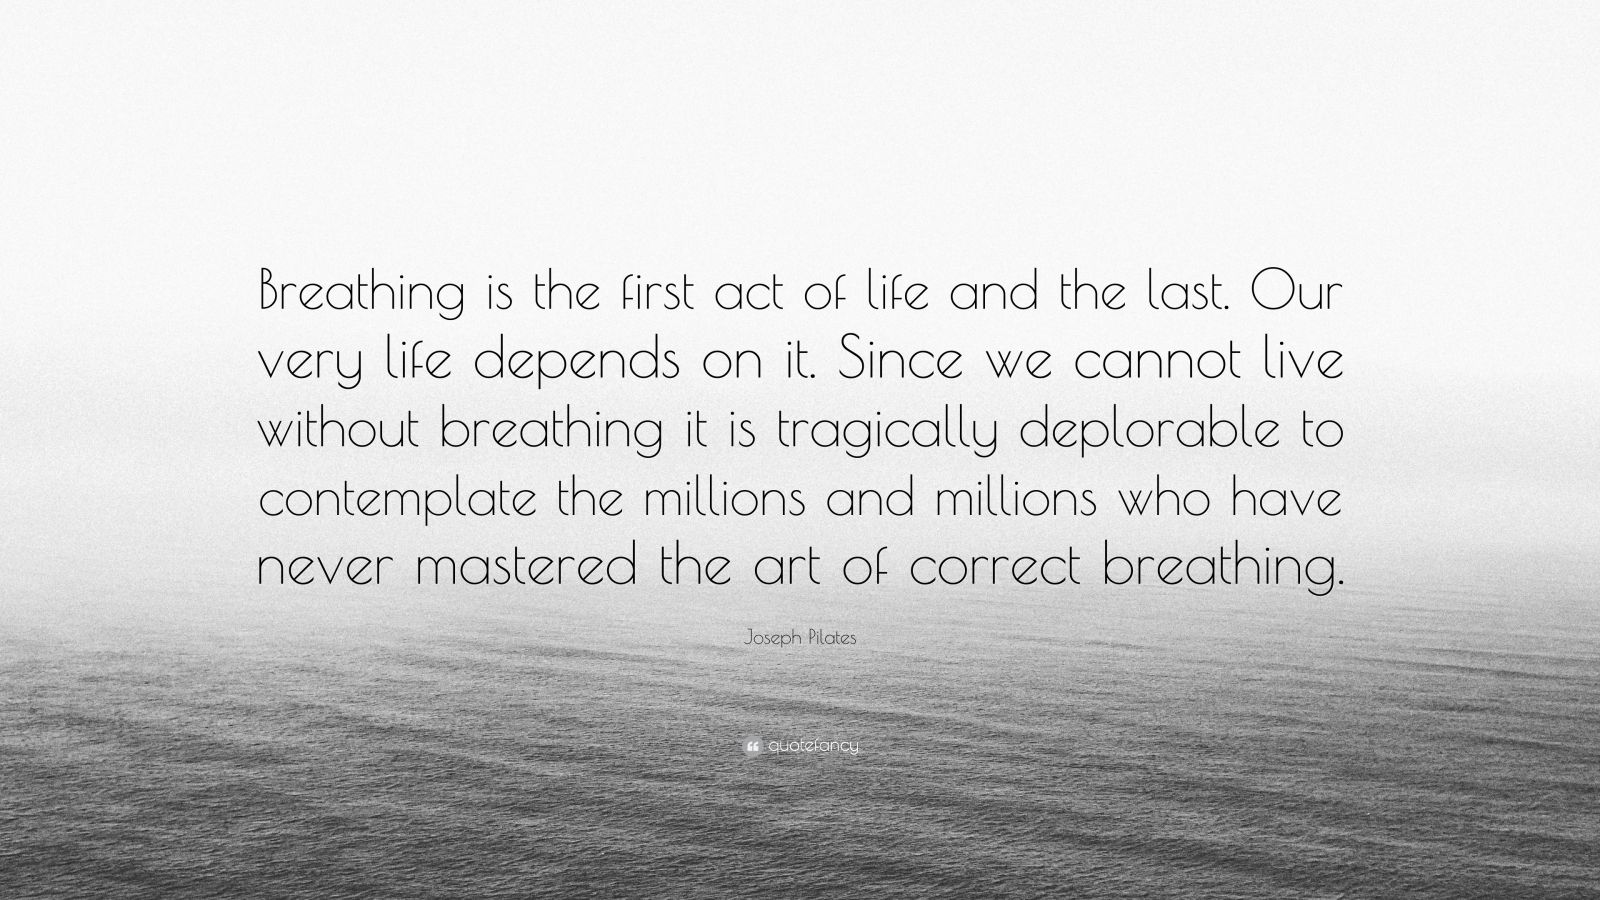 """Joseph Pilates Quote: """"Breathing is the first act of life and the last. Our very life depends on it. Since we cannot live without breathing it is tragically deplorable to contemplate the millions and millions who have never mastered the art of correct breathing."""""""